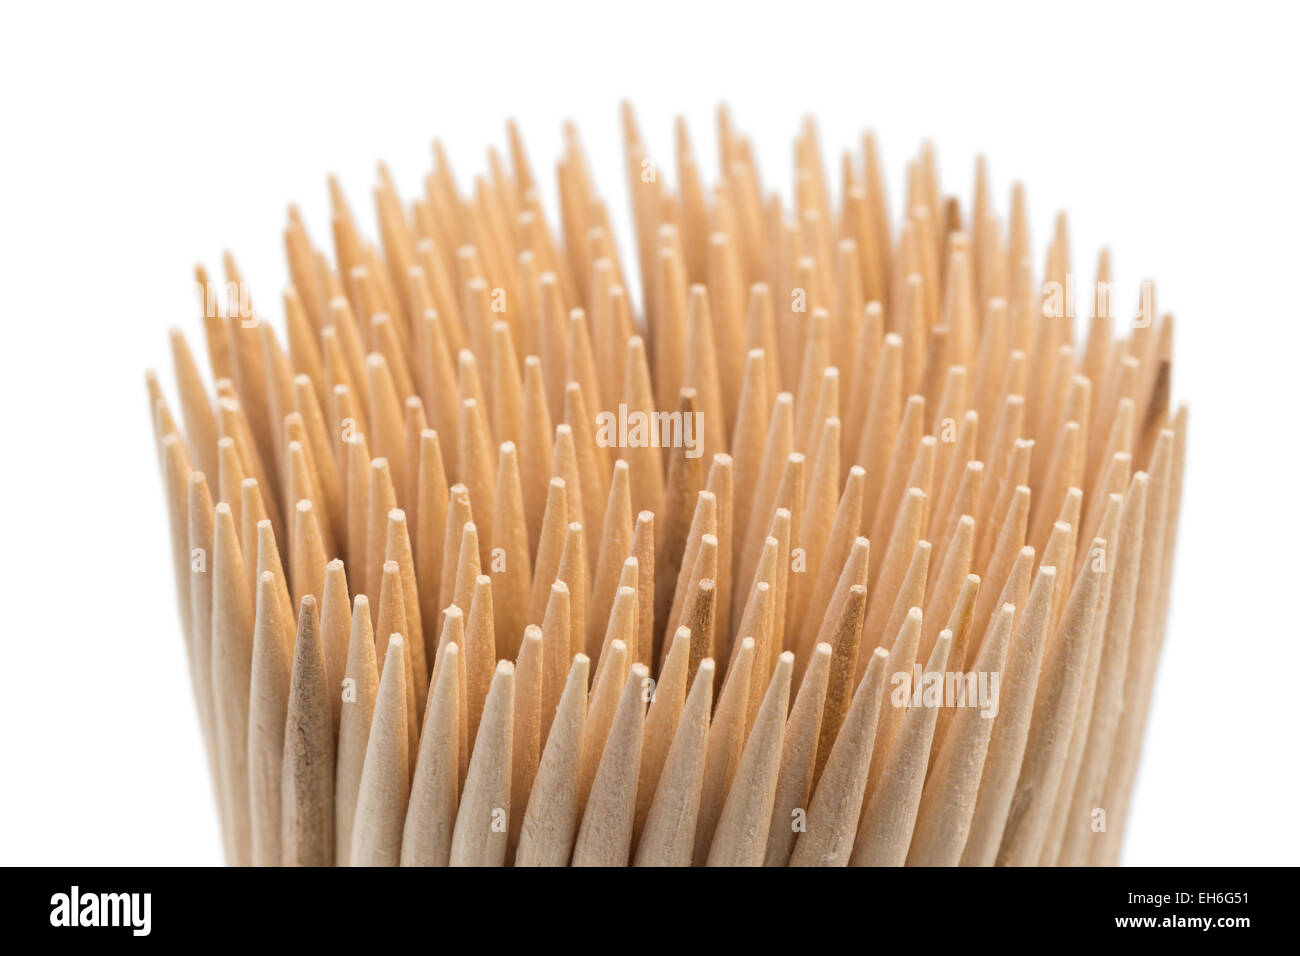 Closeup of stack of wooden toothpicks or cocktail sticks, isolated on white background - Stock Image